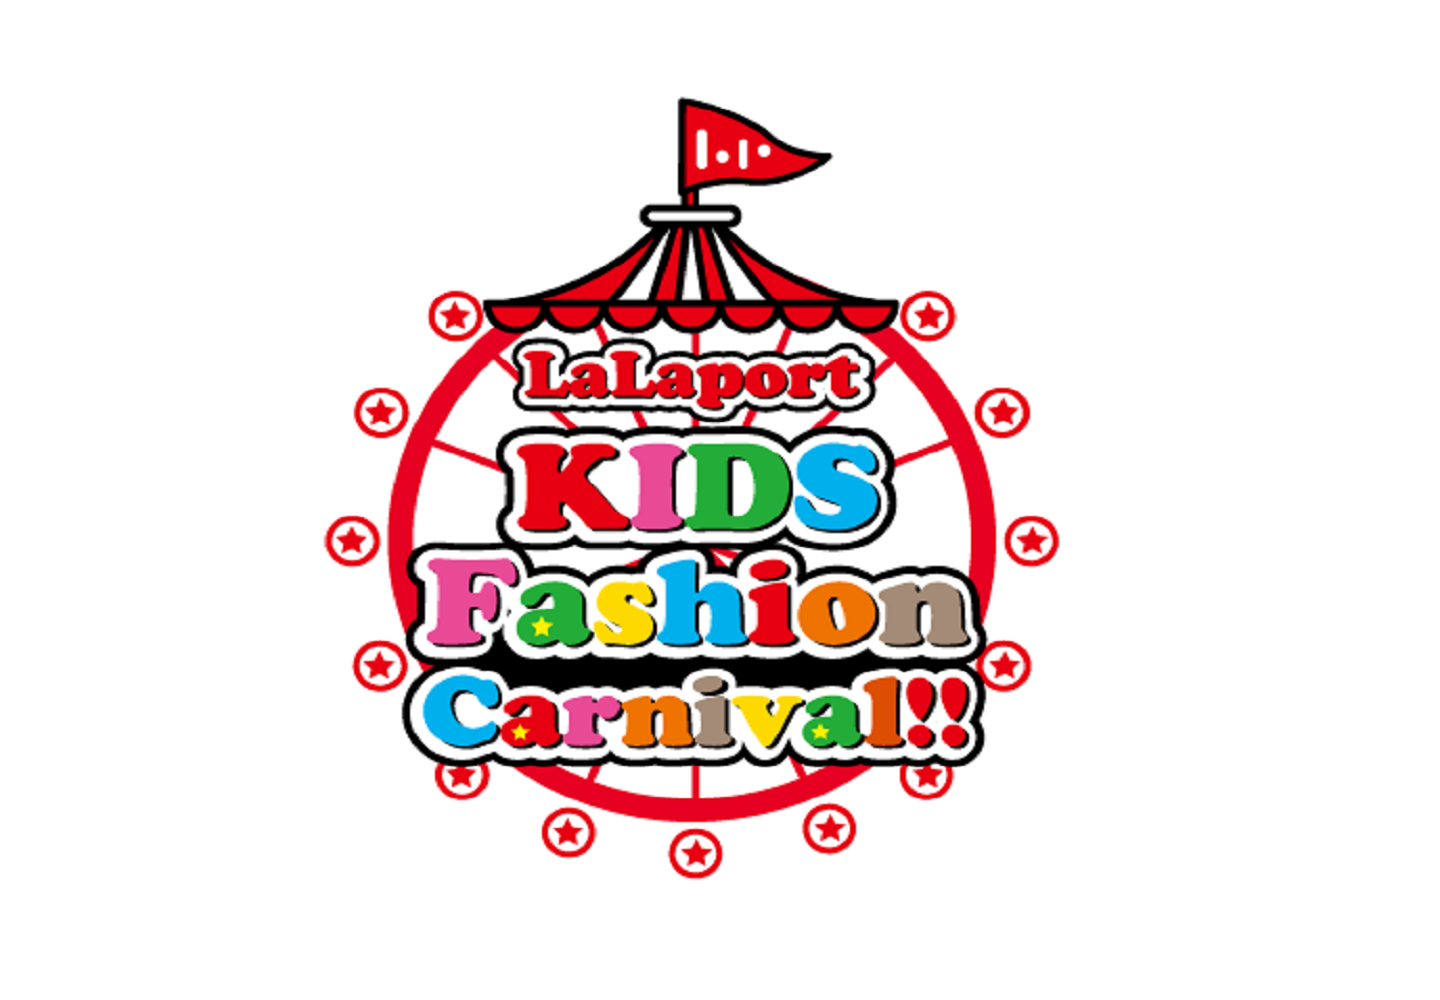 LaLaport KIDS Fashion Carnival!!